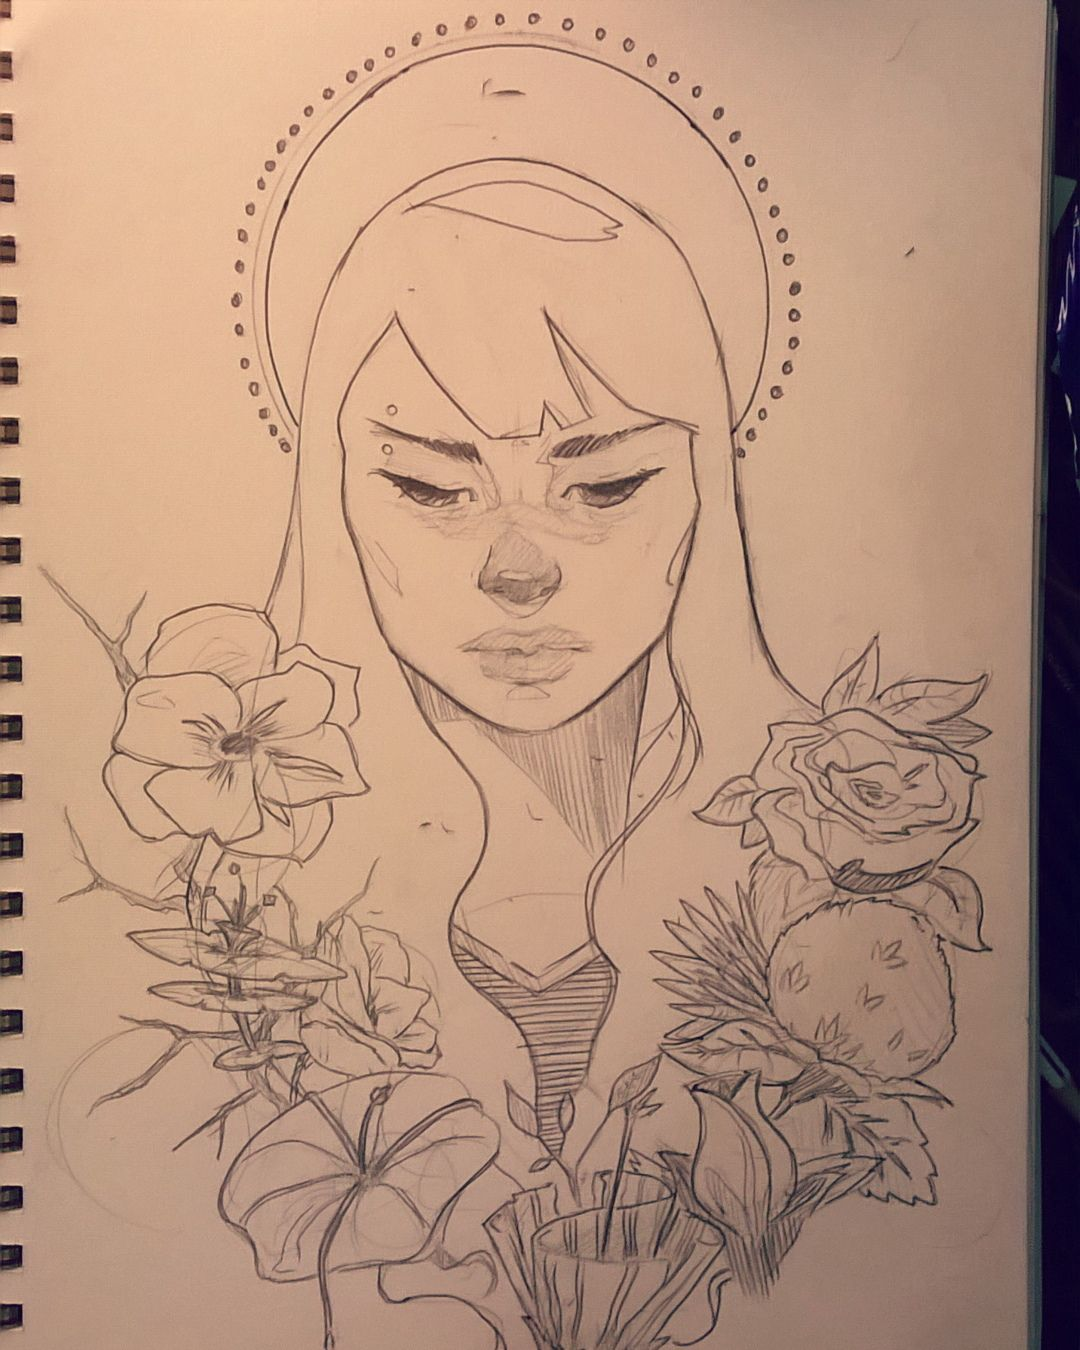 artofyukario - My character Emiko, her mother was a florist and a poet, Emiko lost her family at a young age and now all she has left of them is her mother's garden that still bares beautiful flowers that Emiko keeps safe #sketch #sketches #art #arts #artoftheday #artofvisuals #instagramart #artgram #pencilsketches #illustrationart #illustrations #illustration #drawings #drawing #doodle #artlife #artnerd #artsgallery #sketchbook #artwork #artbook #doodles #pencilwork #artistsoninstagram